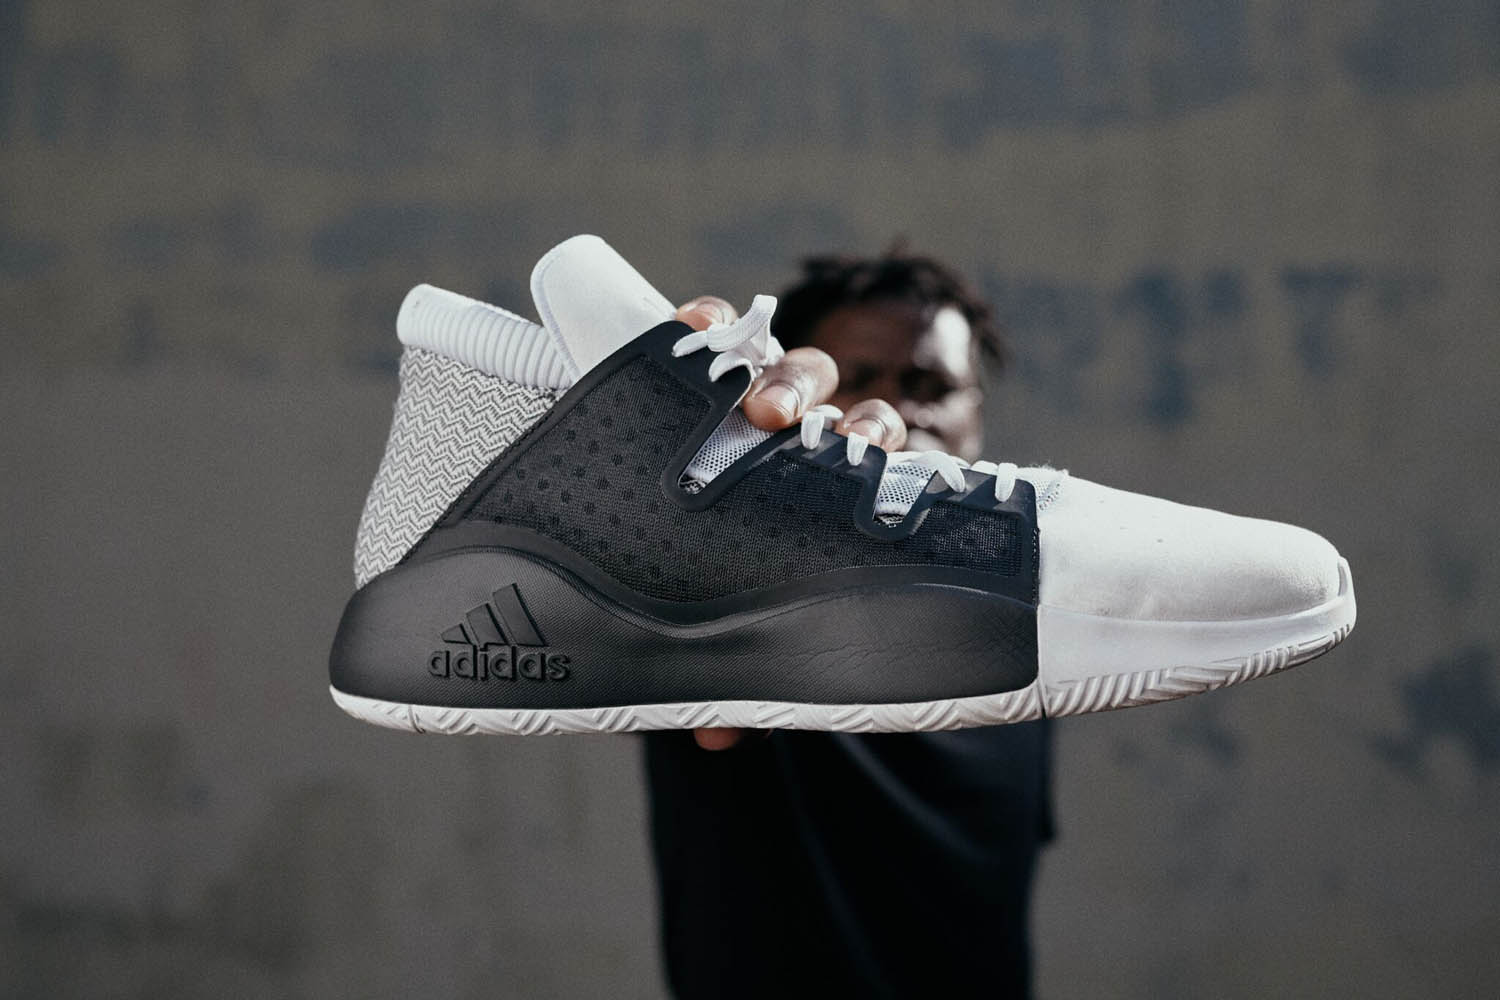 adidas Basketball Officially Unveils